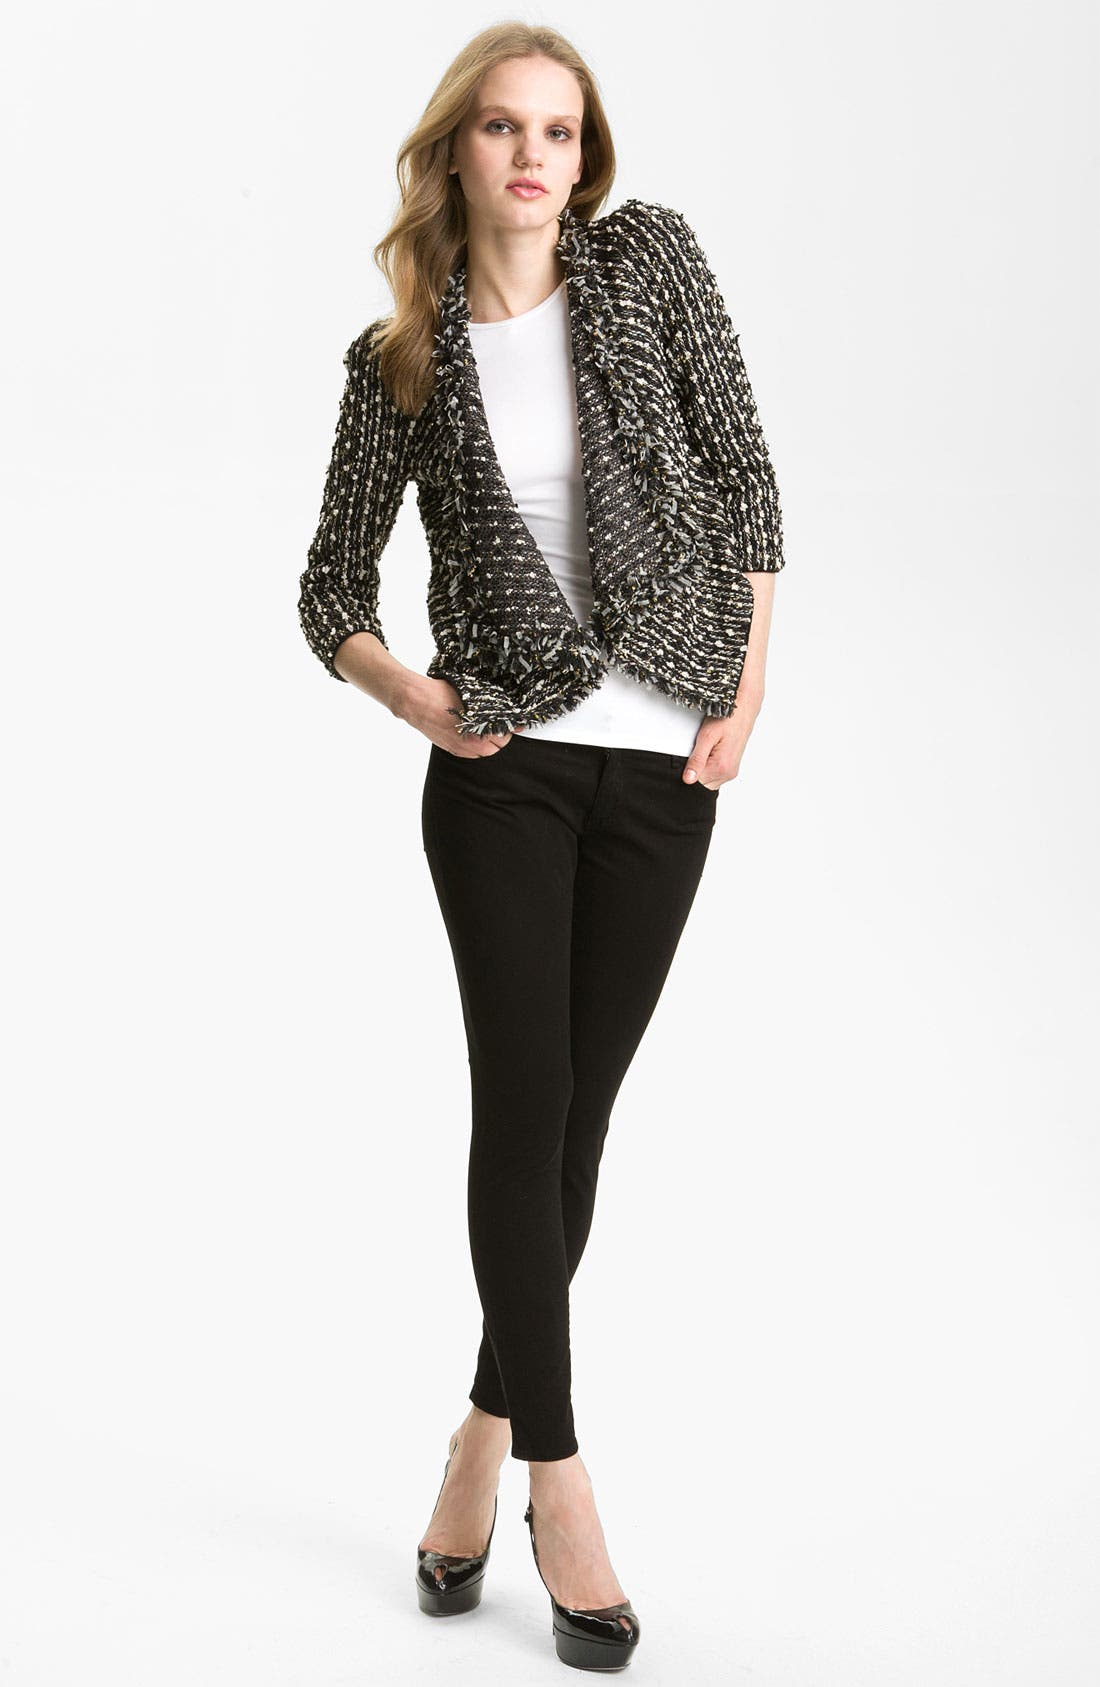 Alternate Image 1 Selected - Mcginn Sequin Knit Open Cardigan (Nordstrom Exclusive)